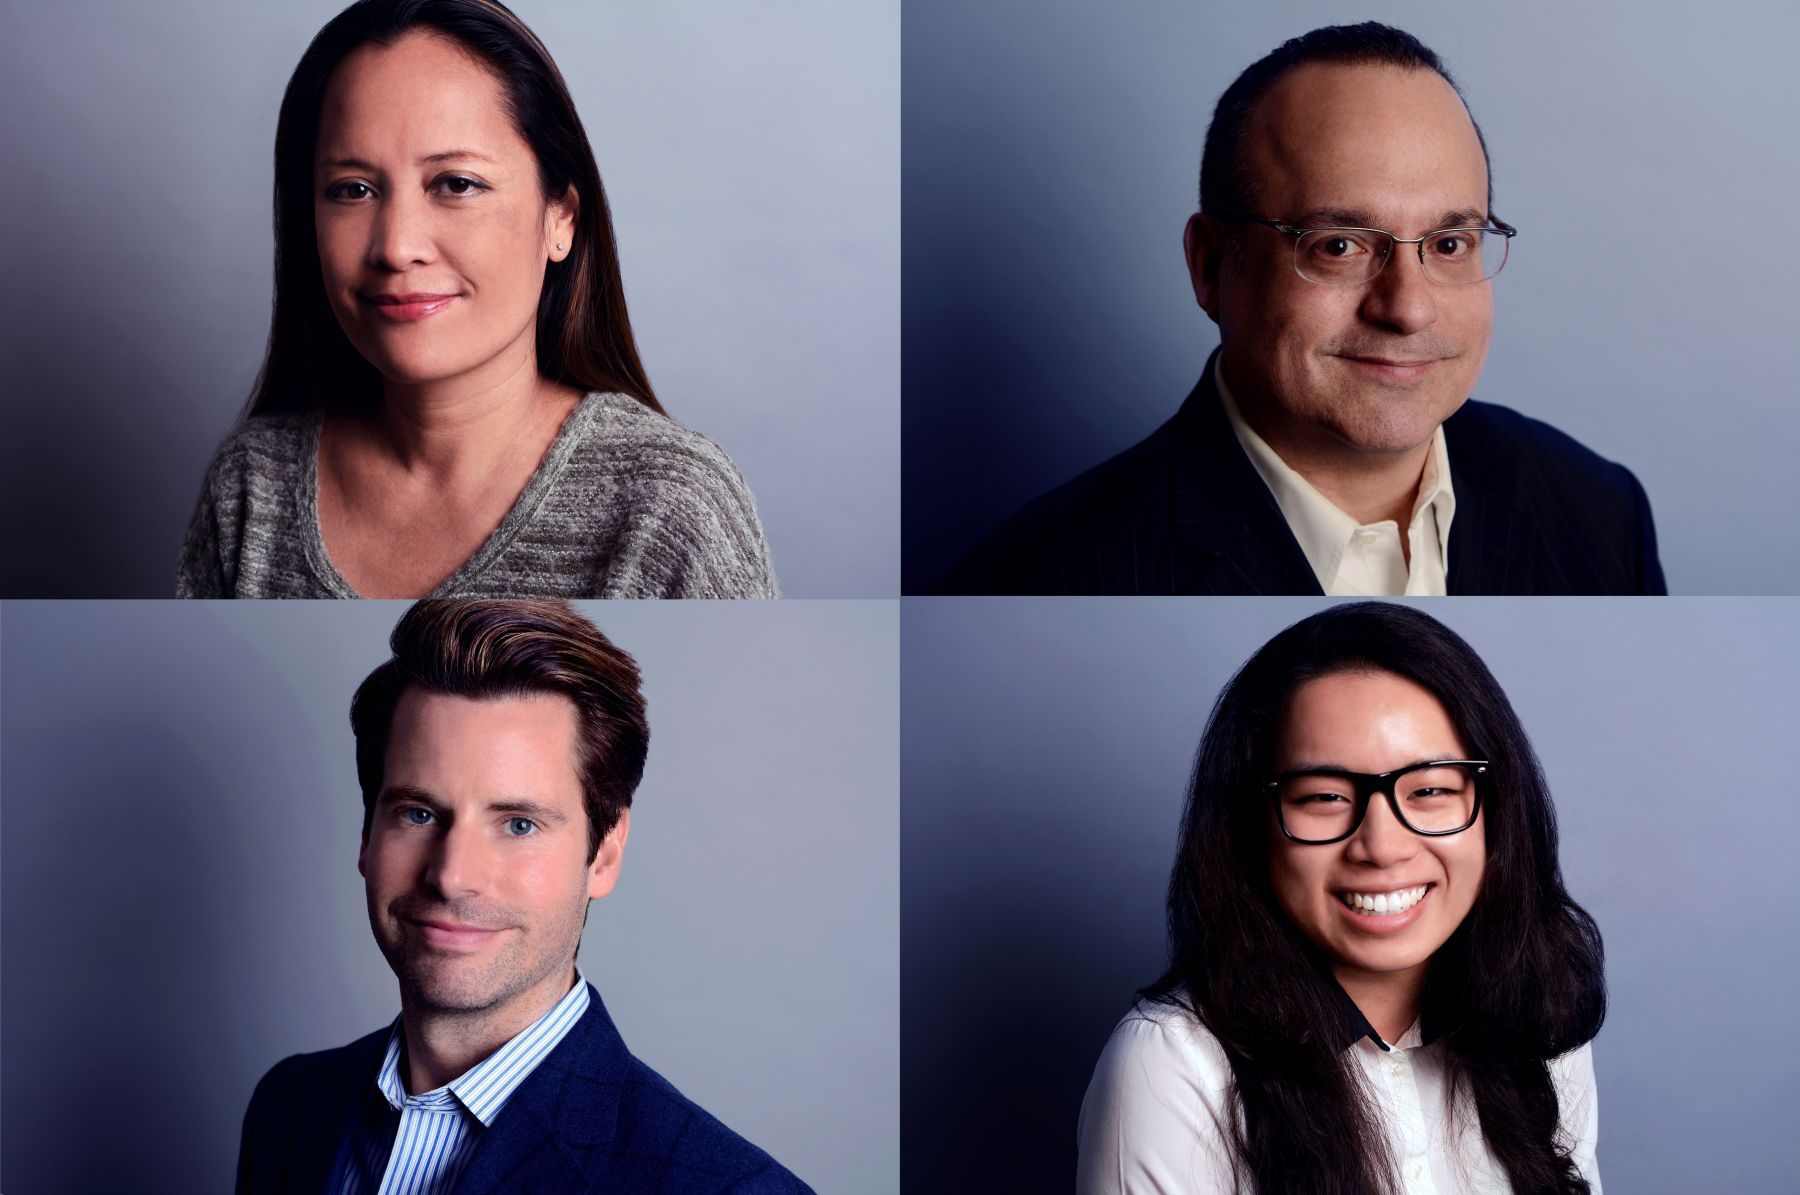 #2016 A picture says 1,000 words, but a picture with a face says much more. In business, image is often the difference between making the sale and missing the opportunity.  Conducting corporate head shots. **Inquiries please email** Richard.Yumang23@gmail.